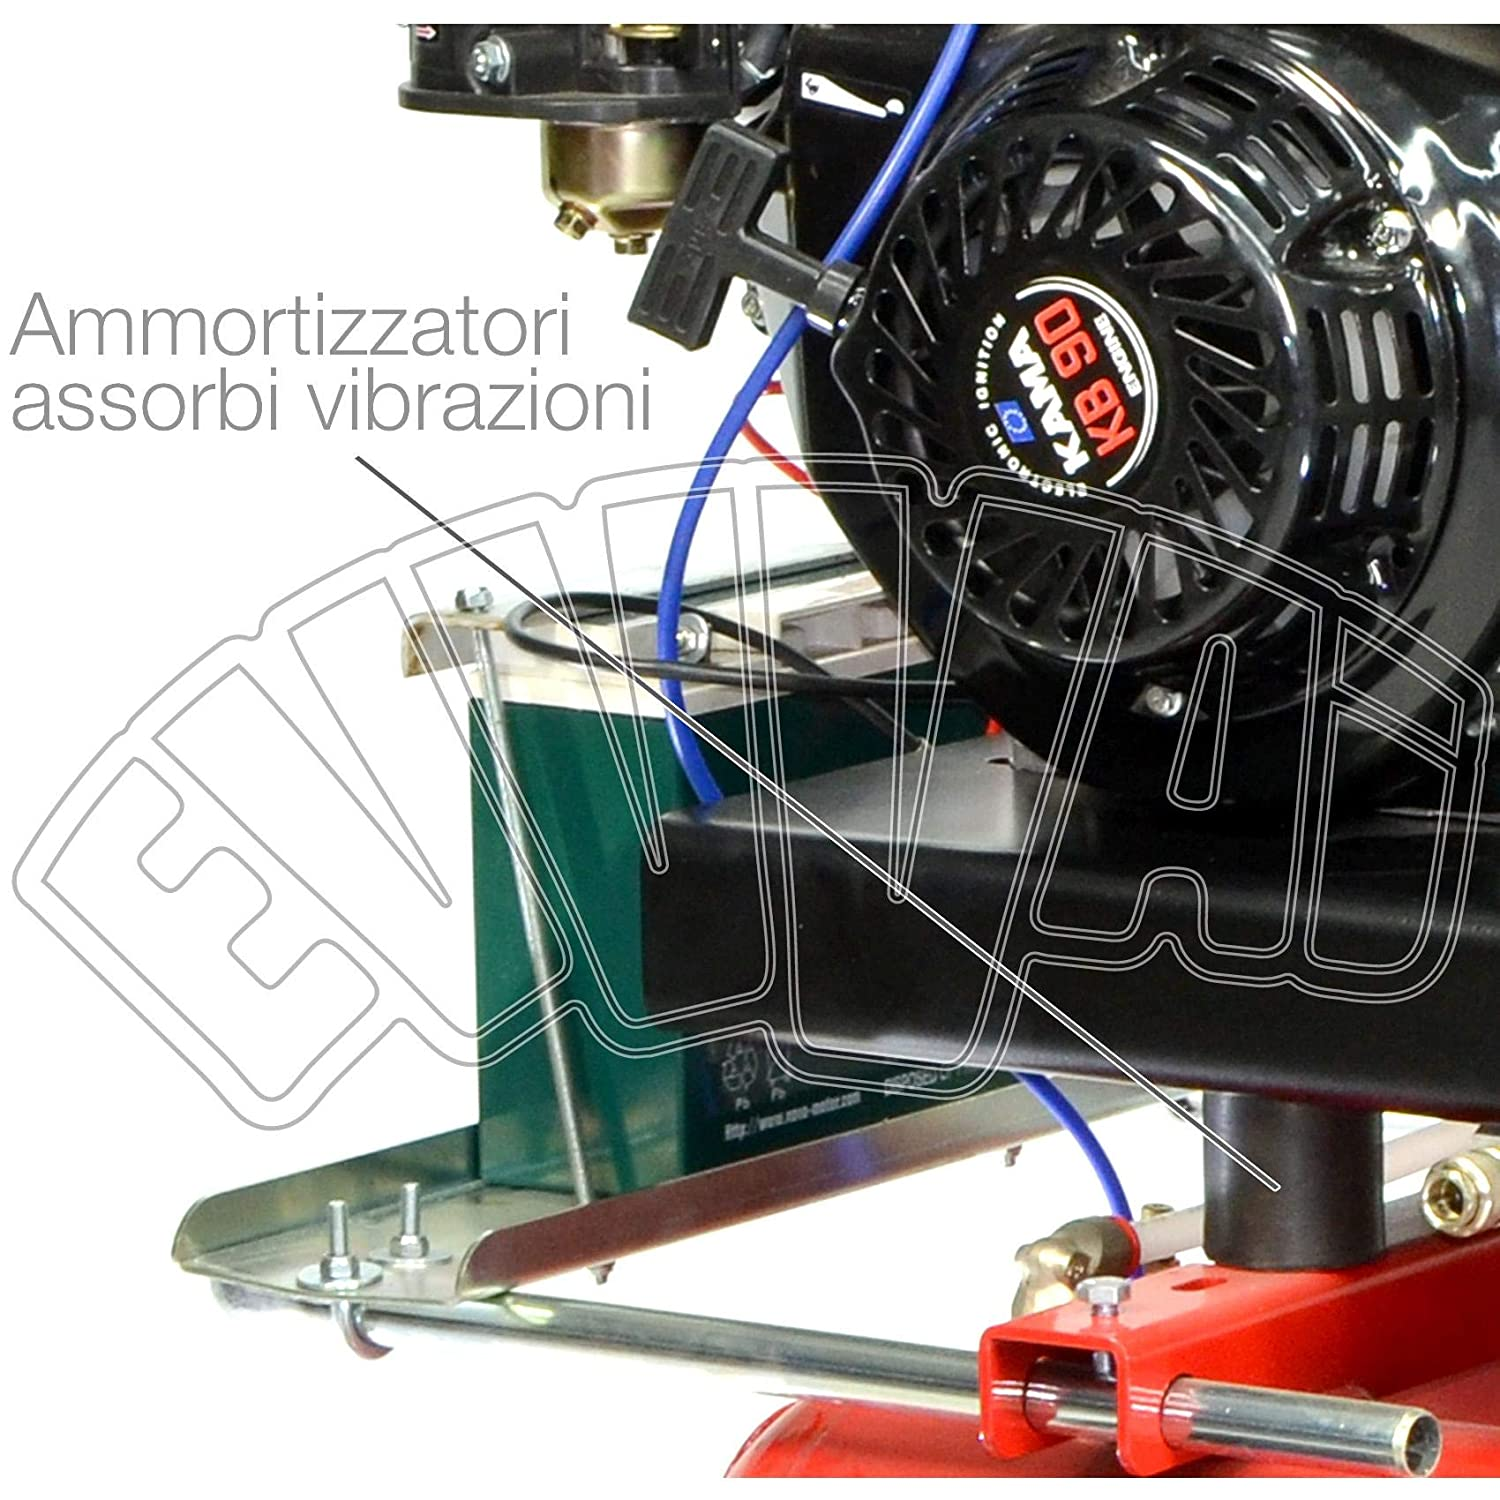 motocompressore 9 HP 22 + 22 Lt - gasolina arranque eléctrico Compresor Aire: Amazon.es: Hogar